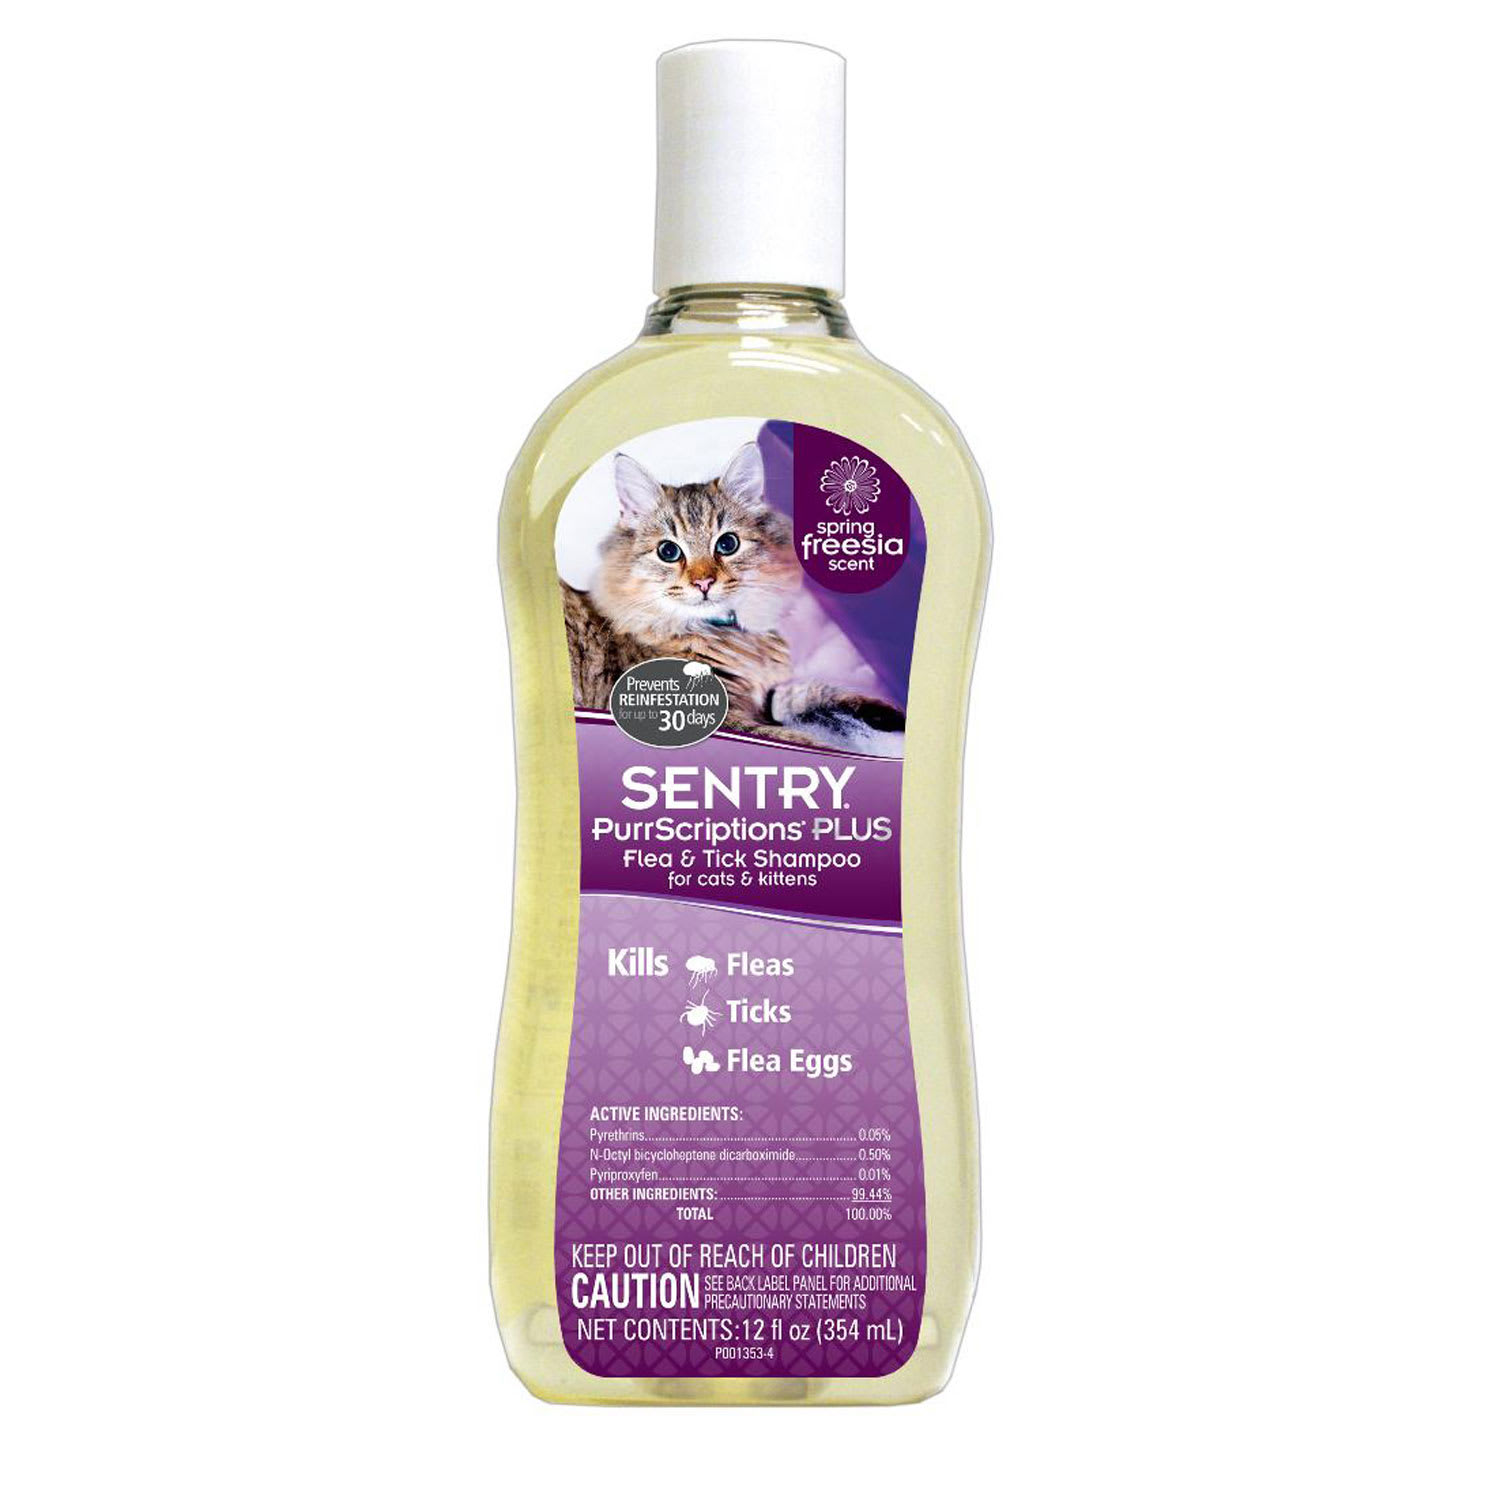 Sentry PurrScriptions Plus Flea & Tick Shampoo for Cats & Kittens, 12-ounce